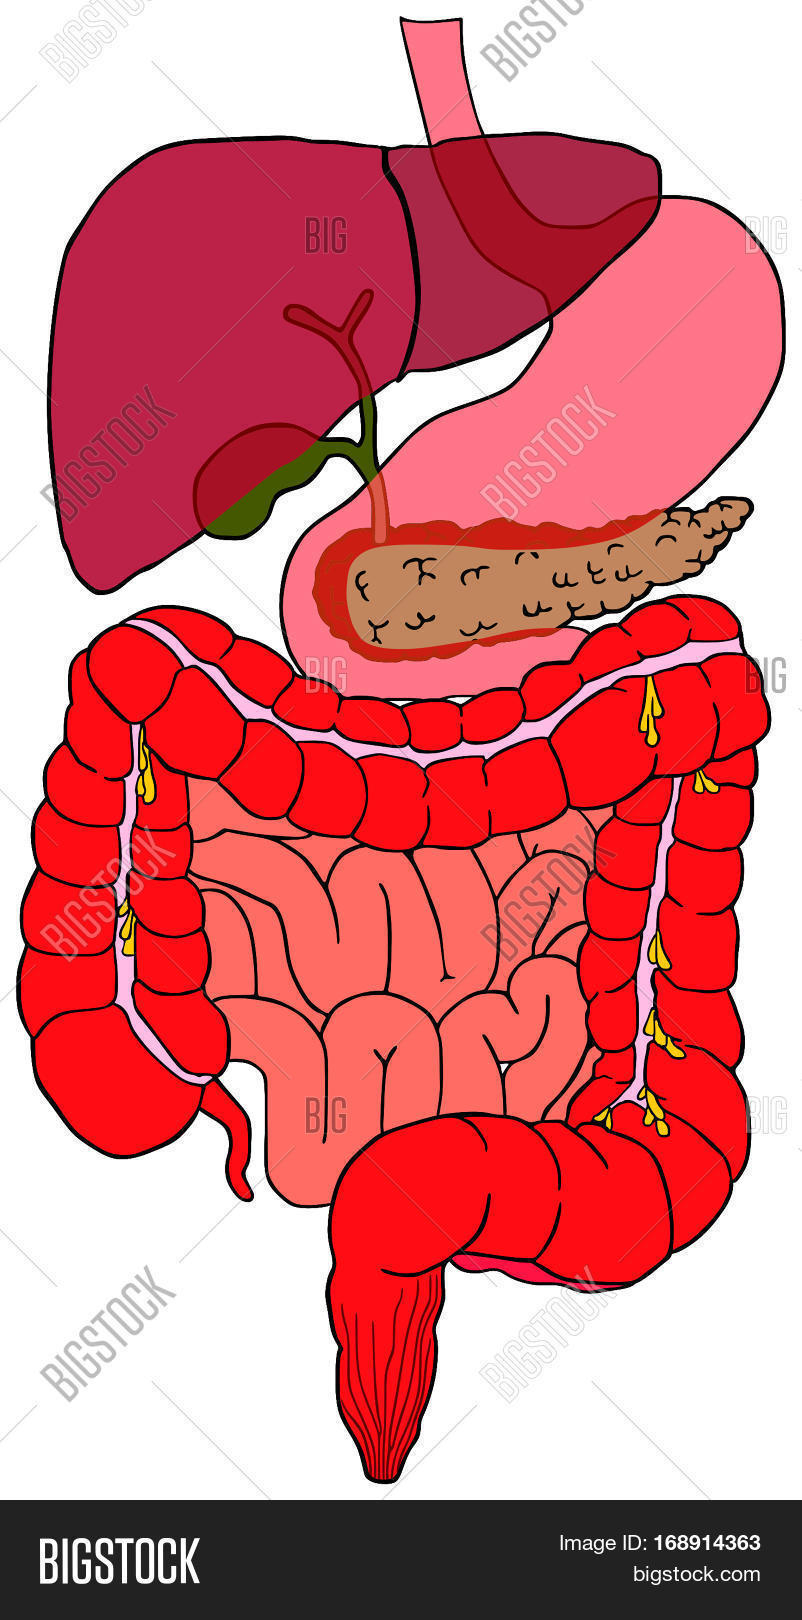 Diagram Of Digestive System Human Digestive System Image Photo Free Trial Bigstock